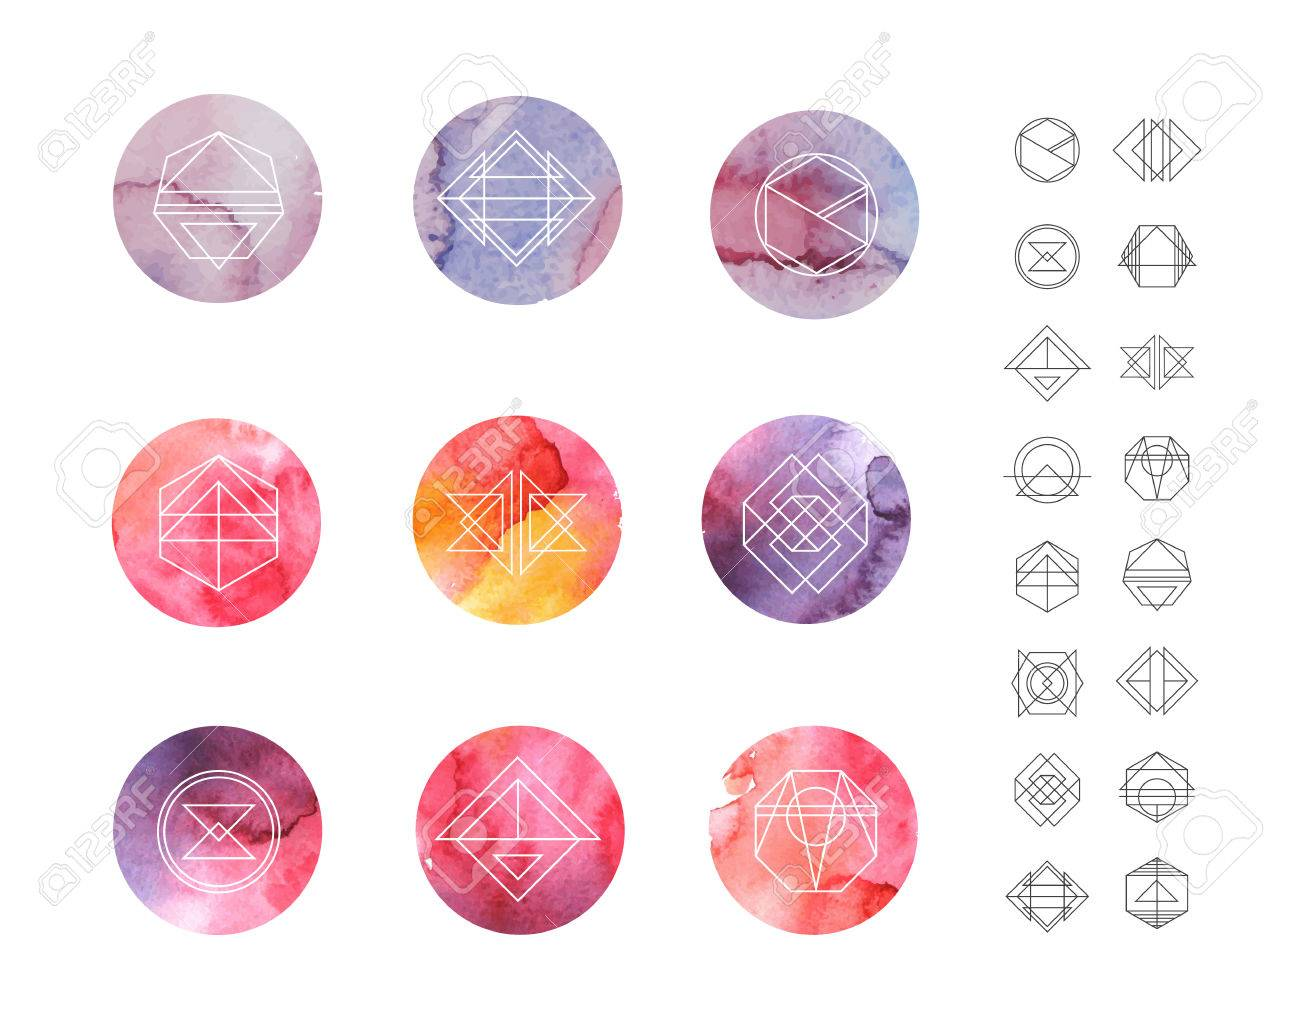 abstract circle watercolor patterns set with hipster style icons